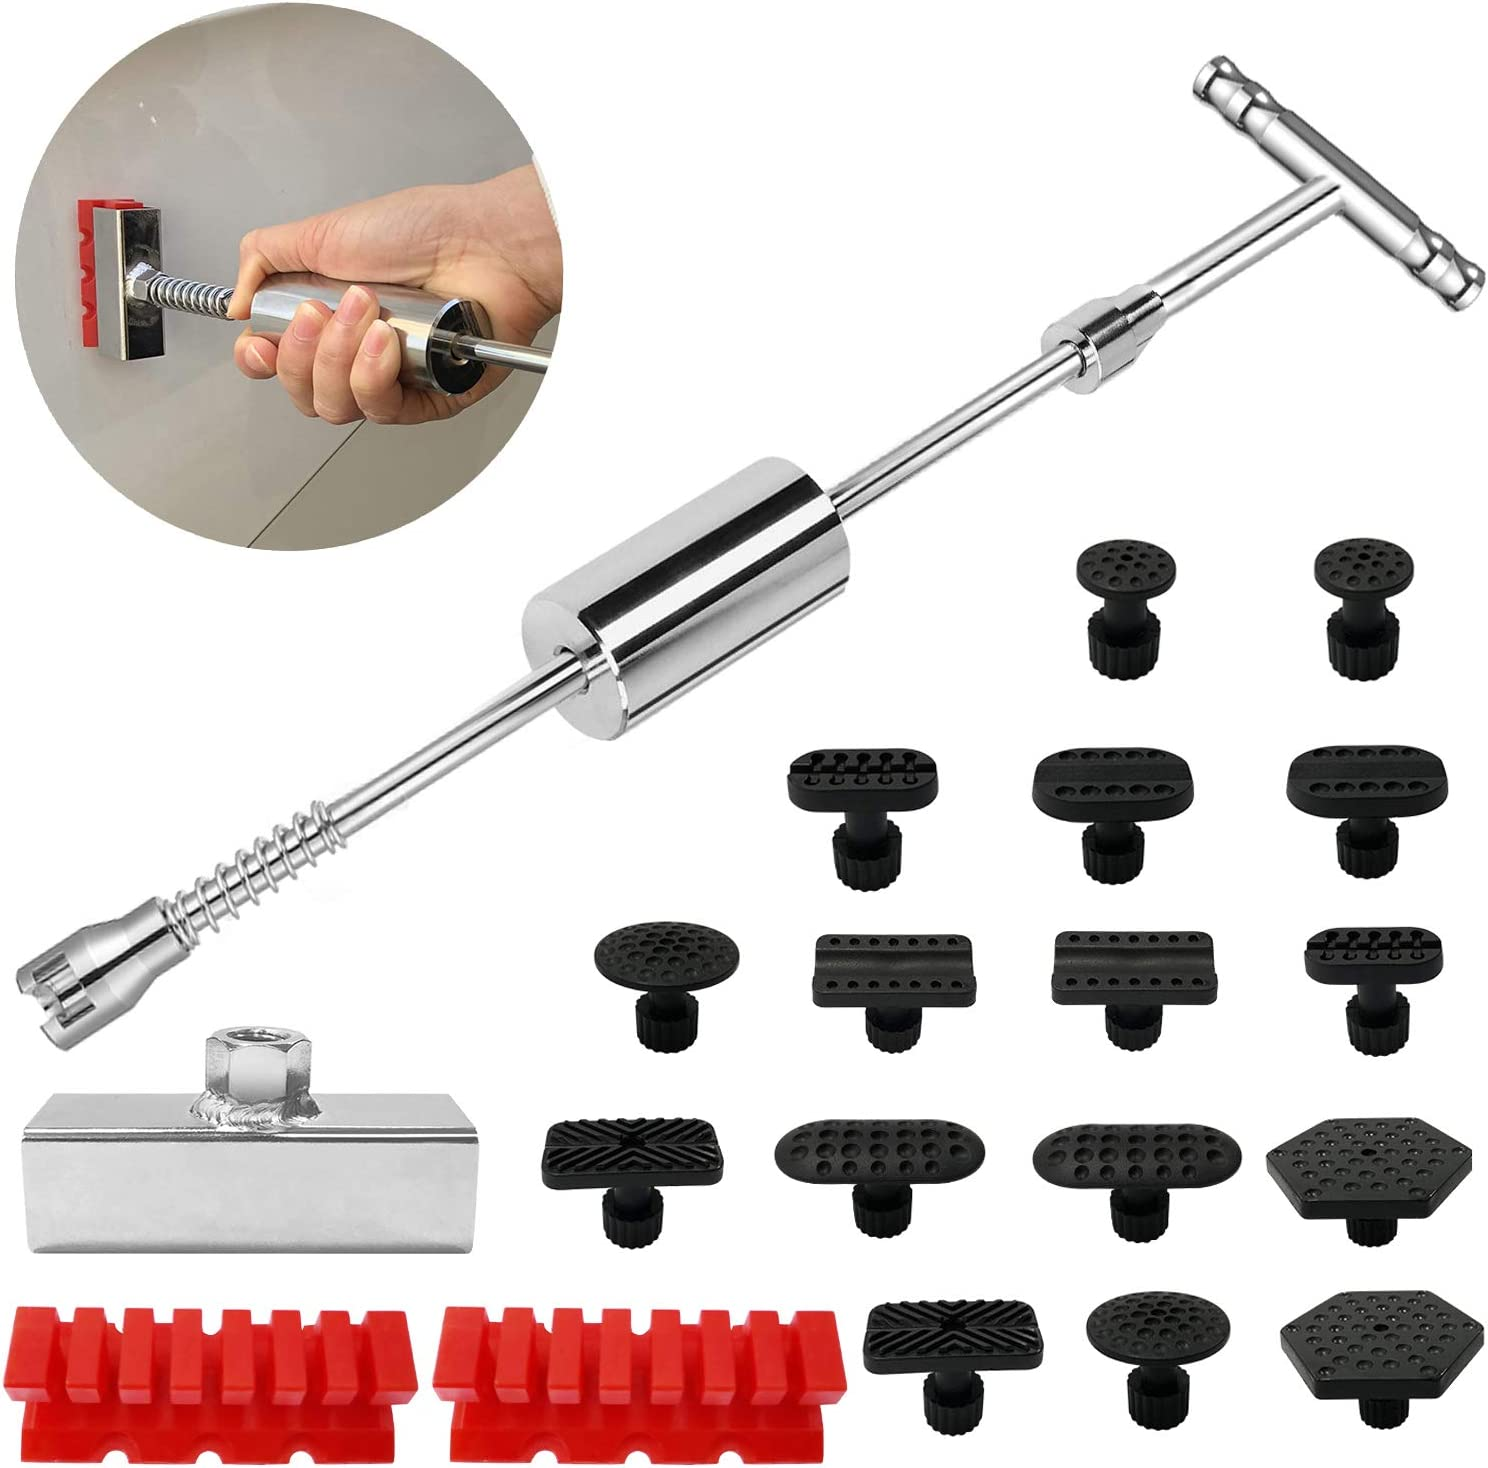 Manelord Dent Puller - Dent Remover with T bar Dent Puller and Upgraded Dent Puller Tabs for Car Dent Repair and Metal Surface Dent Removal